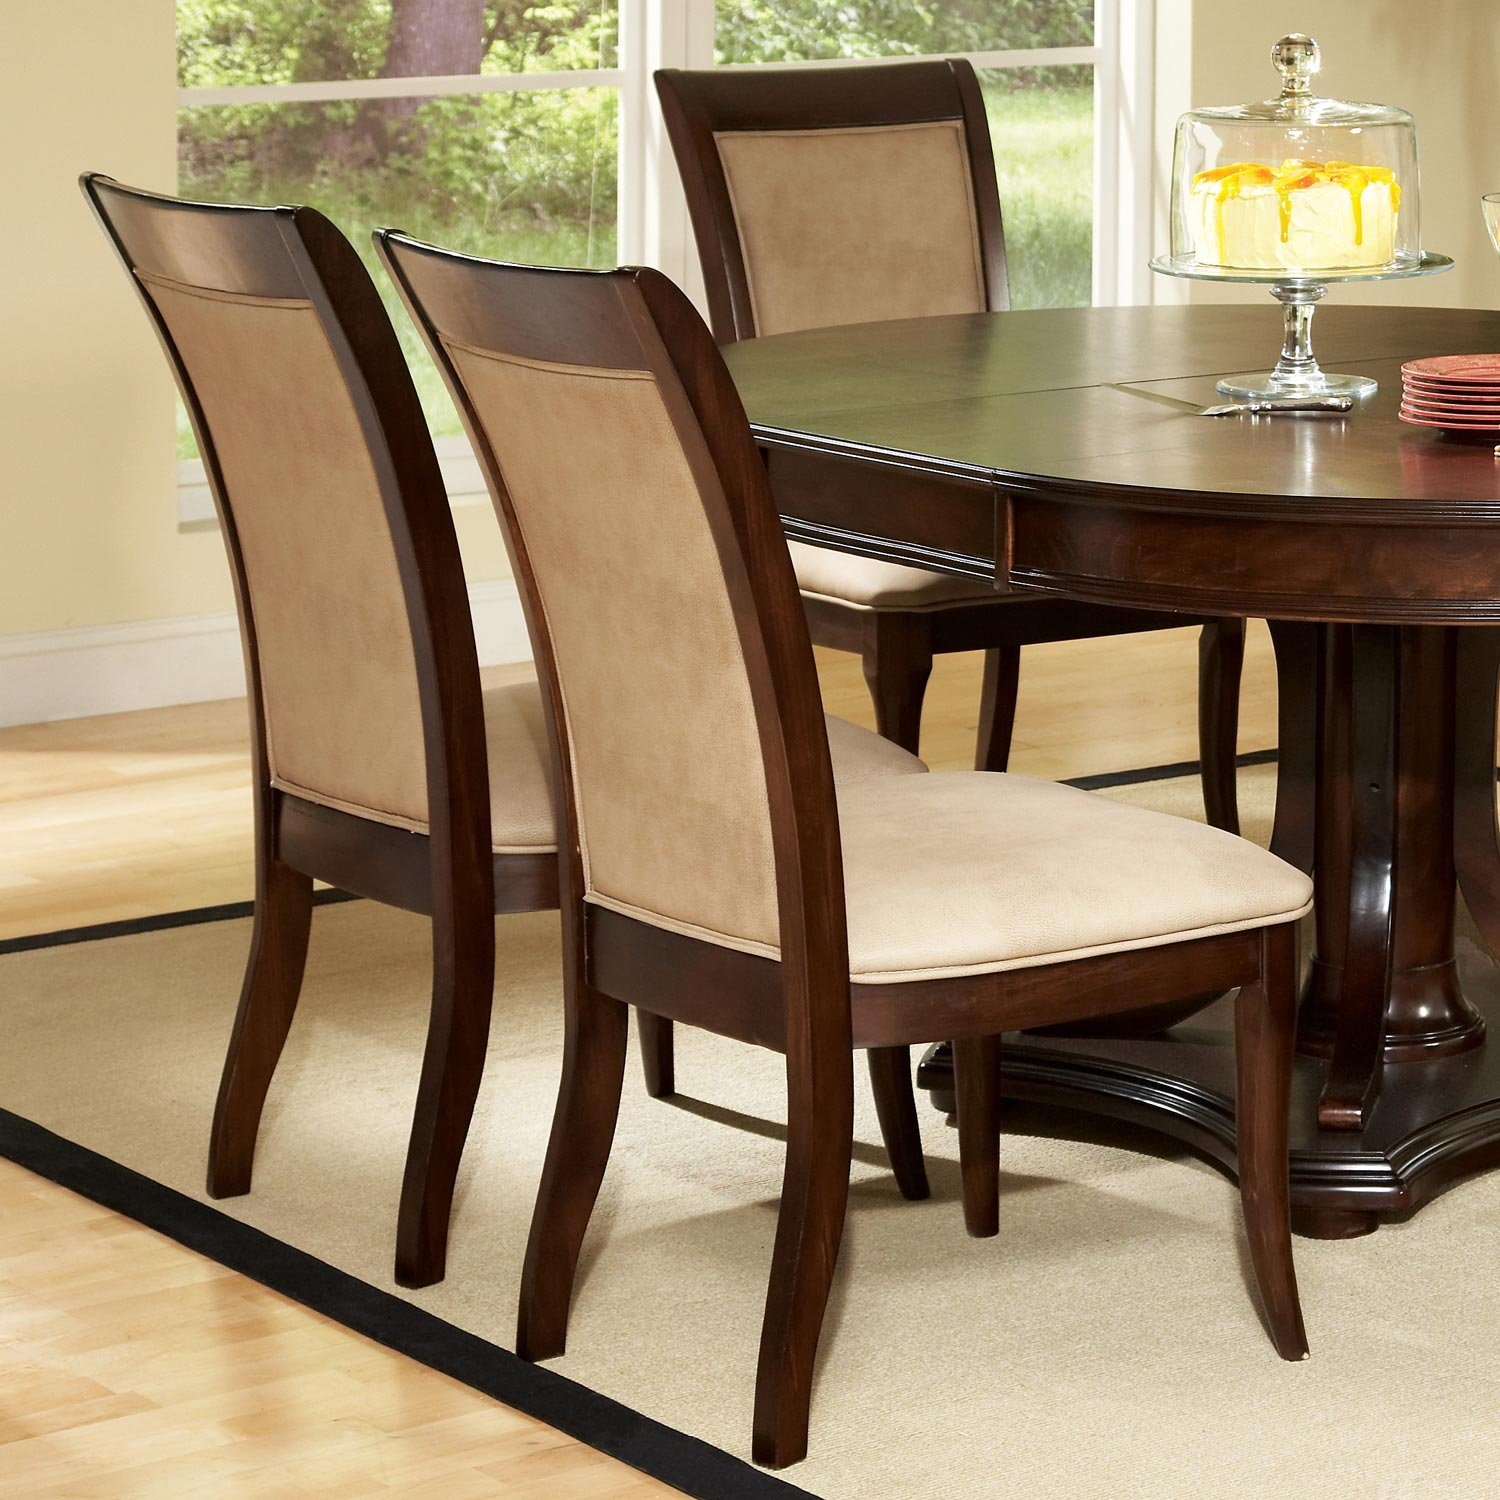 Marseille 7 Piece Dining Set Oval Extension Table Cream